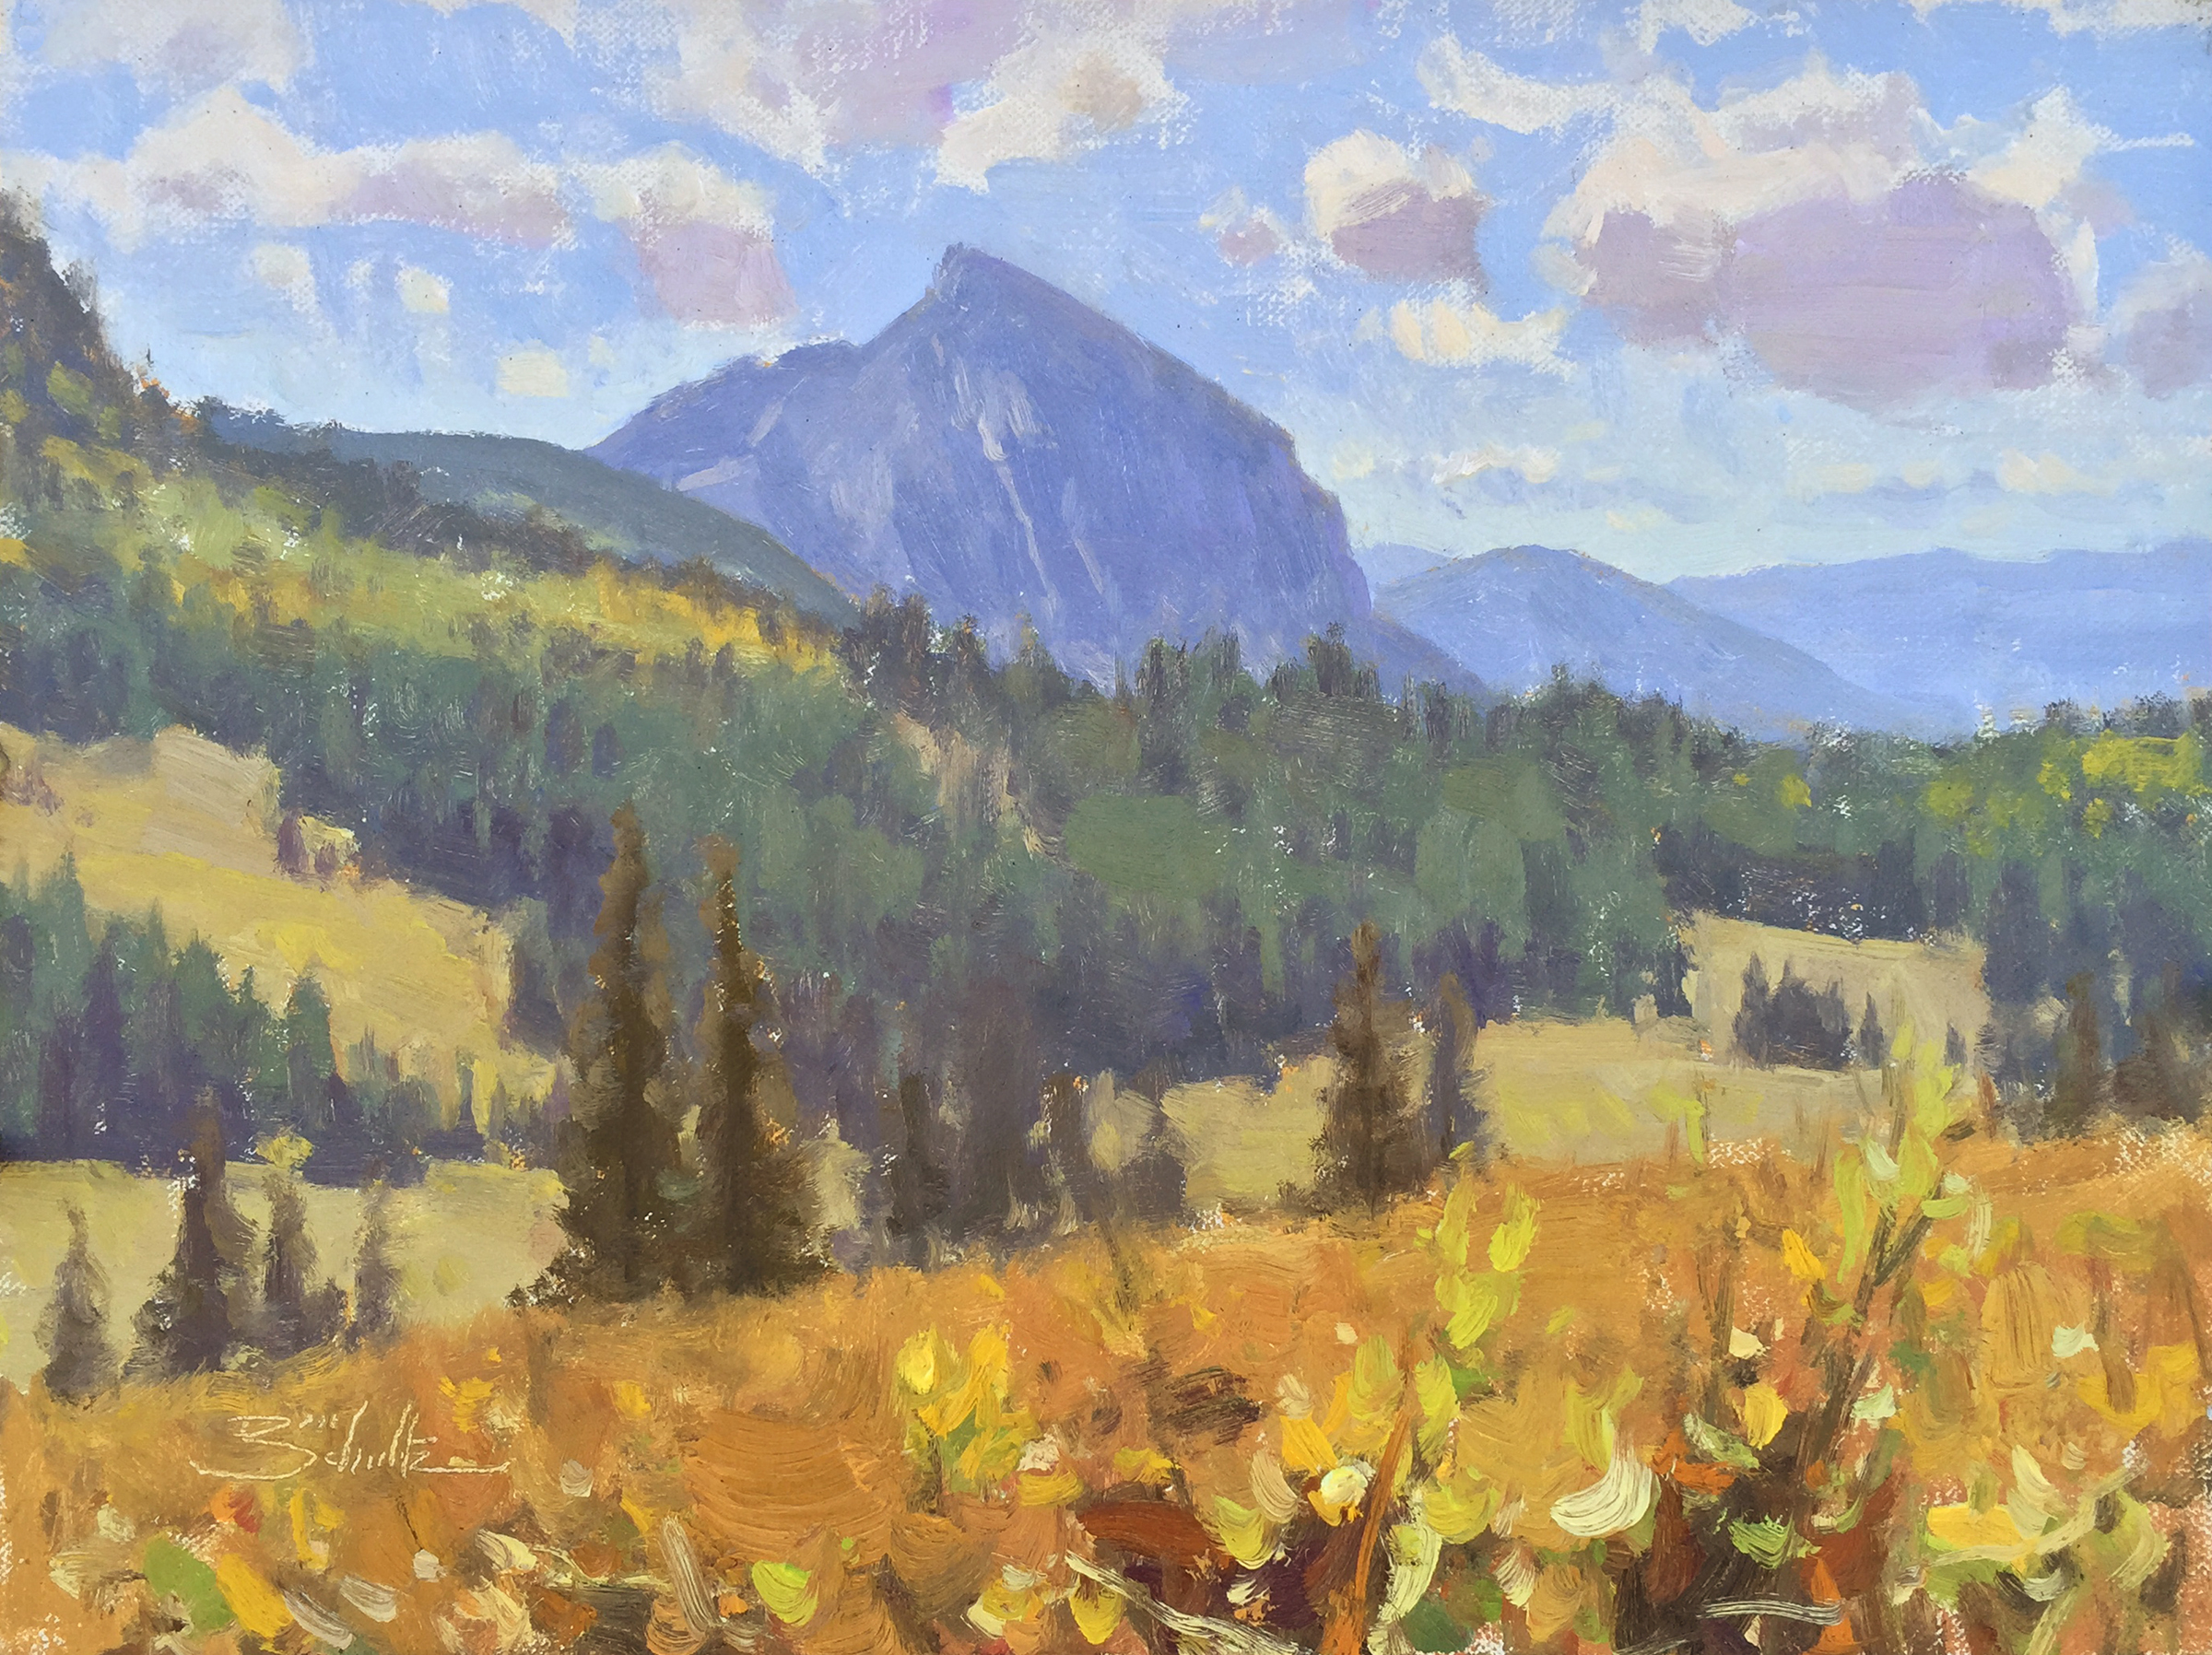 dsh16-10-crested-butte-vista-9x12-oil-1000-f